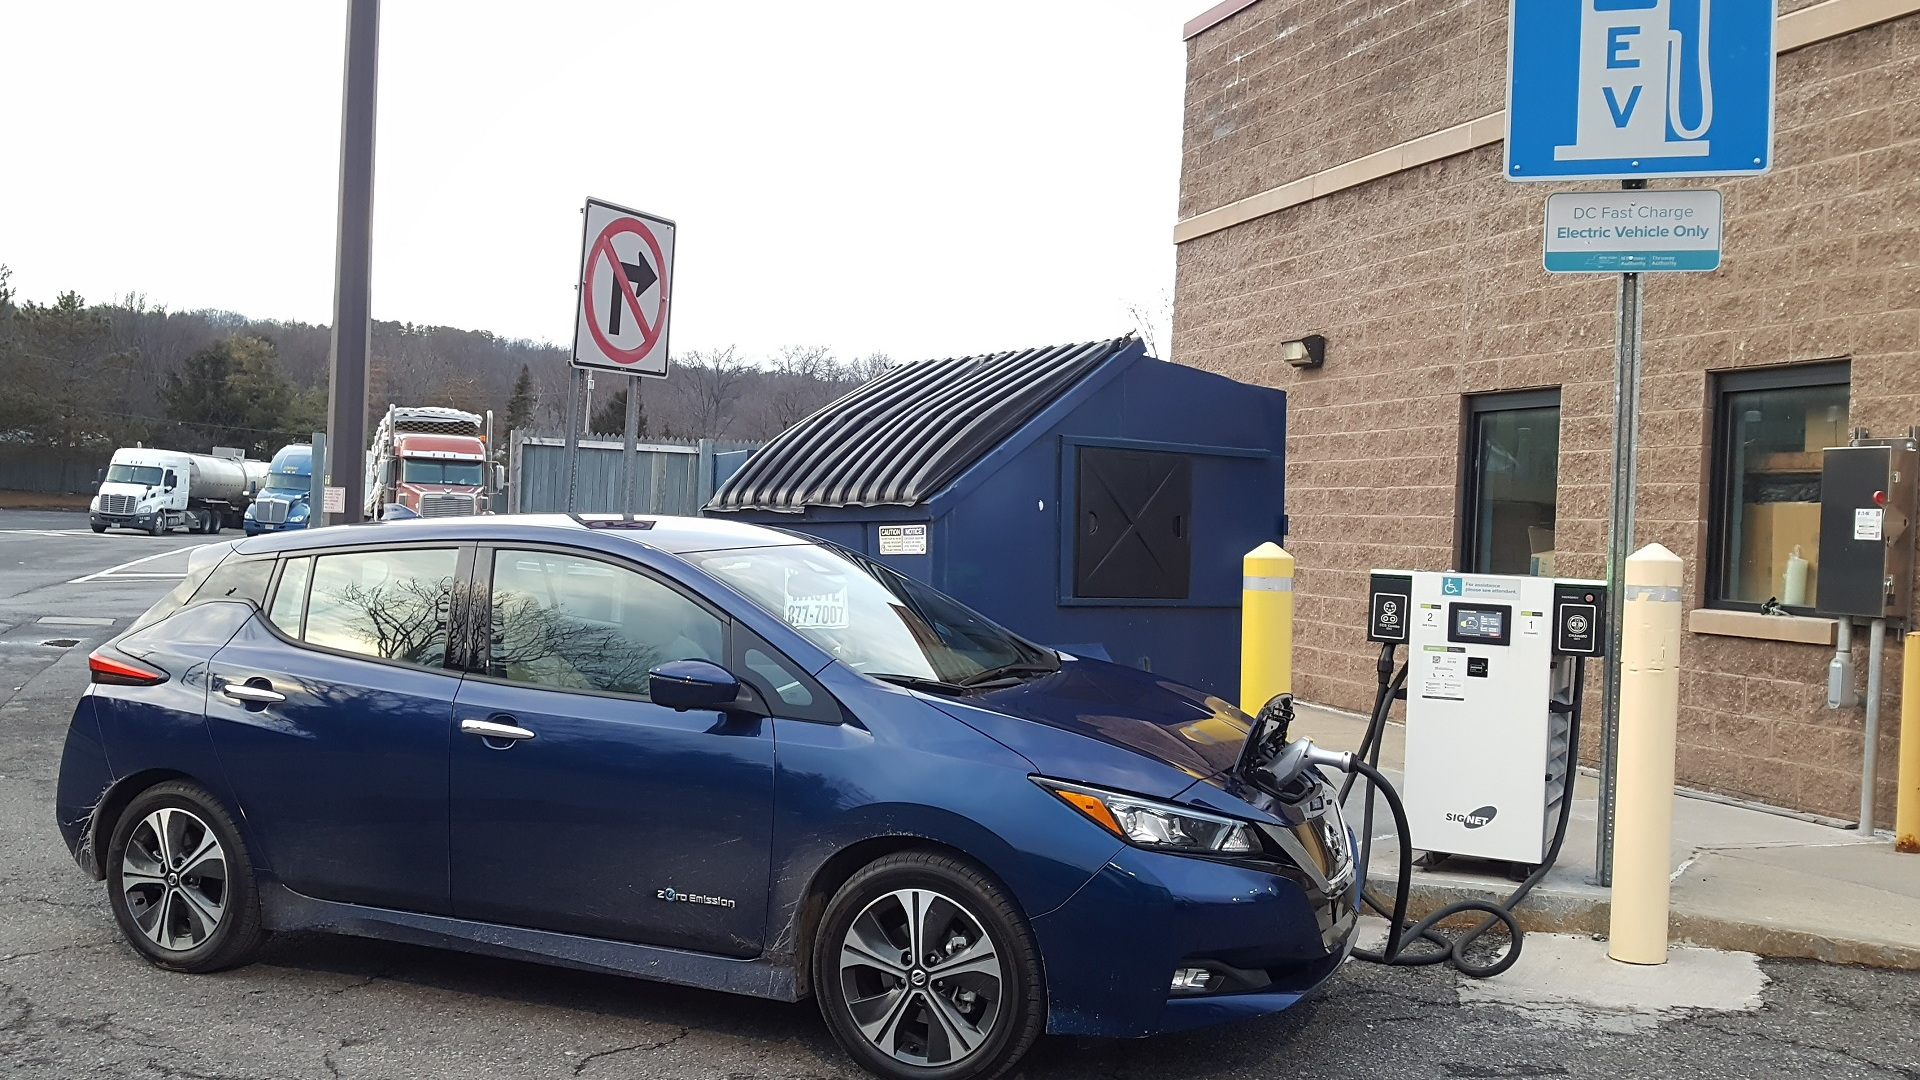 2018 Nissan Leaf with Greenlots fast charger by Dumpster at I-87 Modena travel plaza, Feb 2018